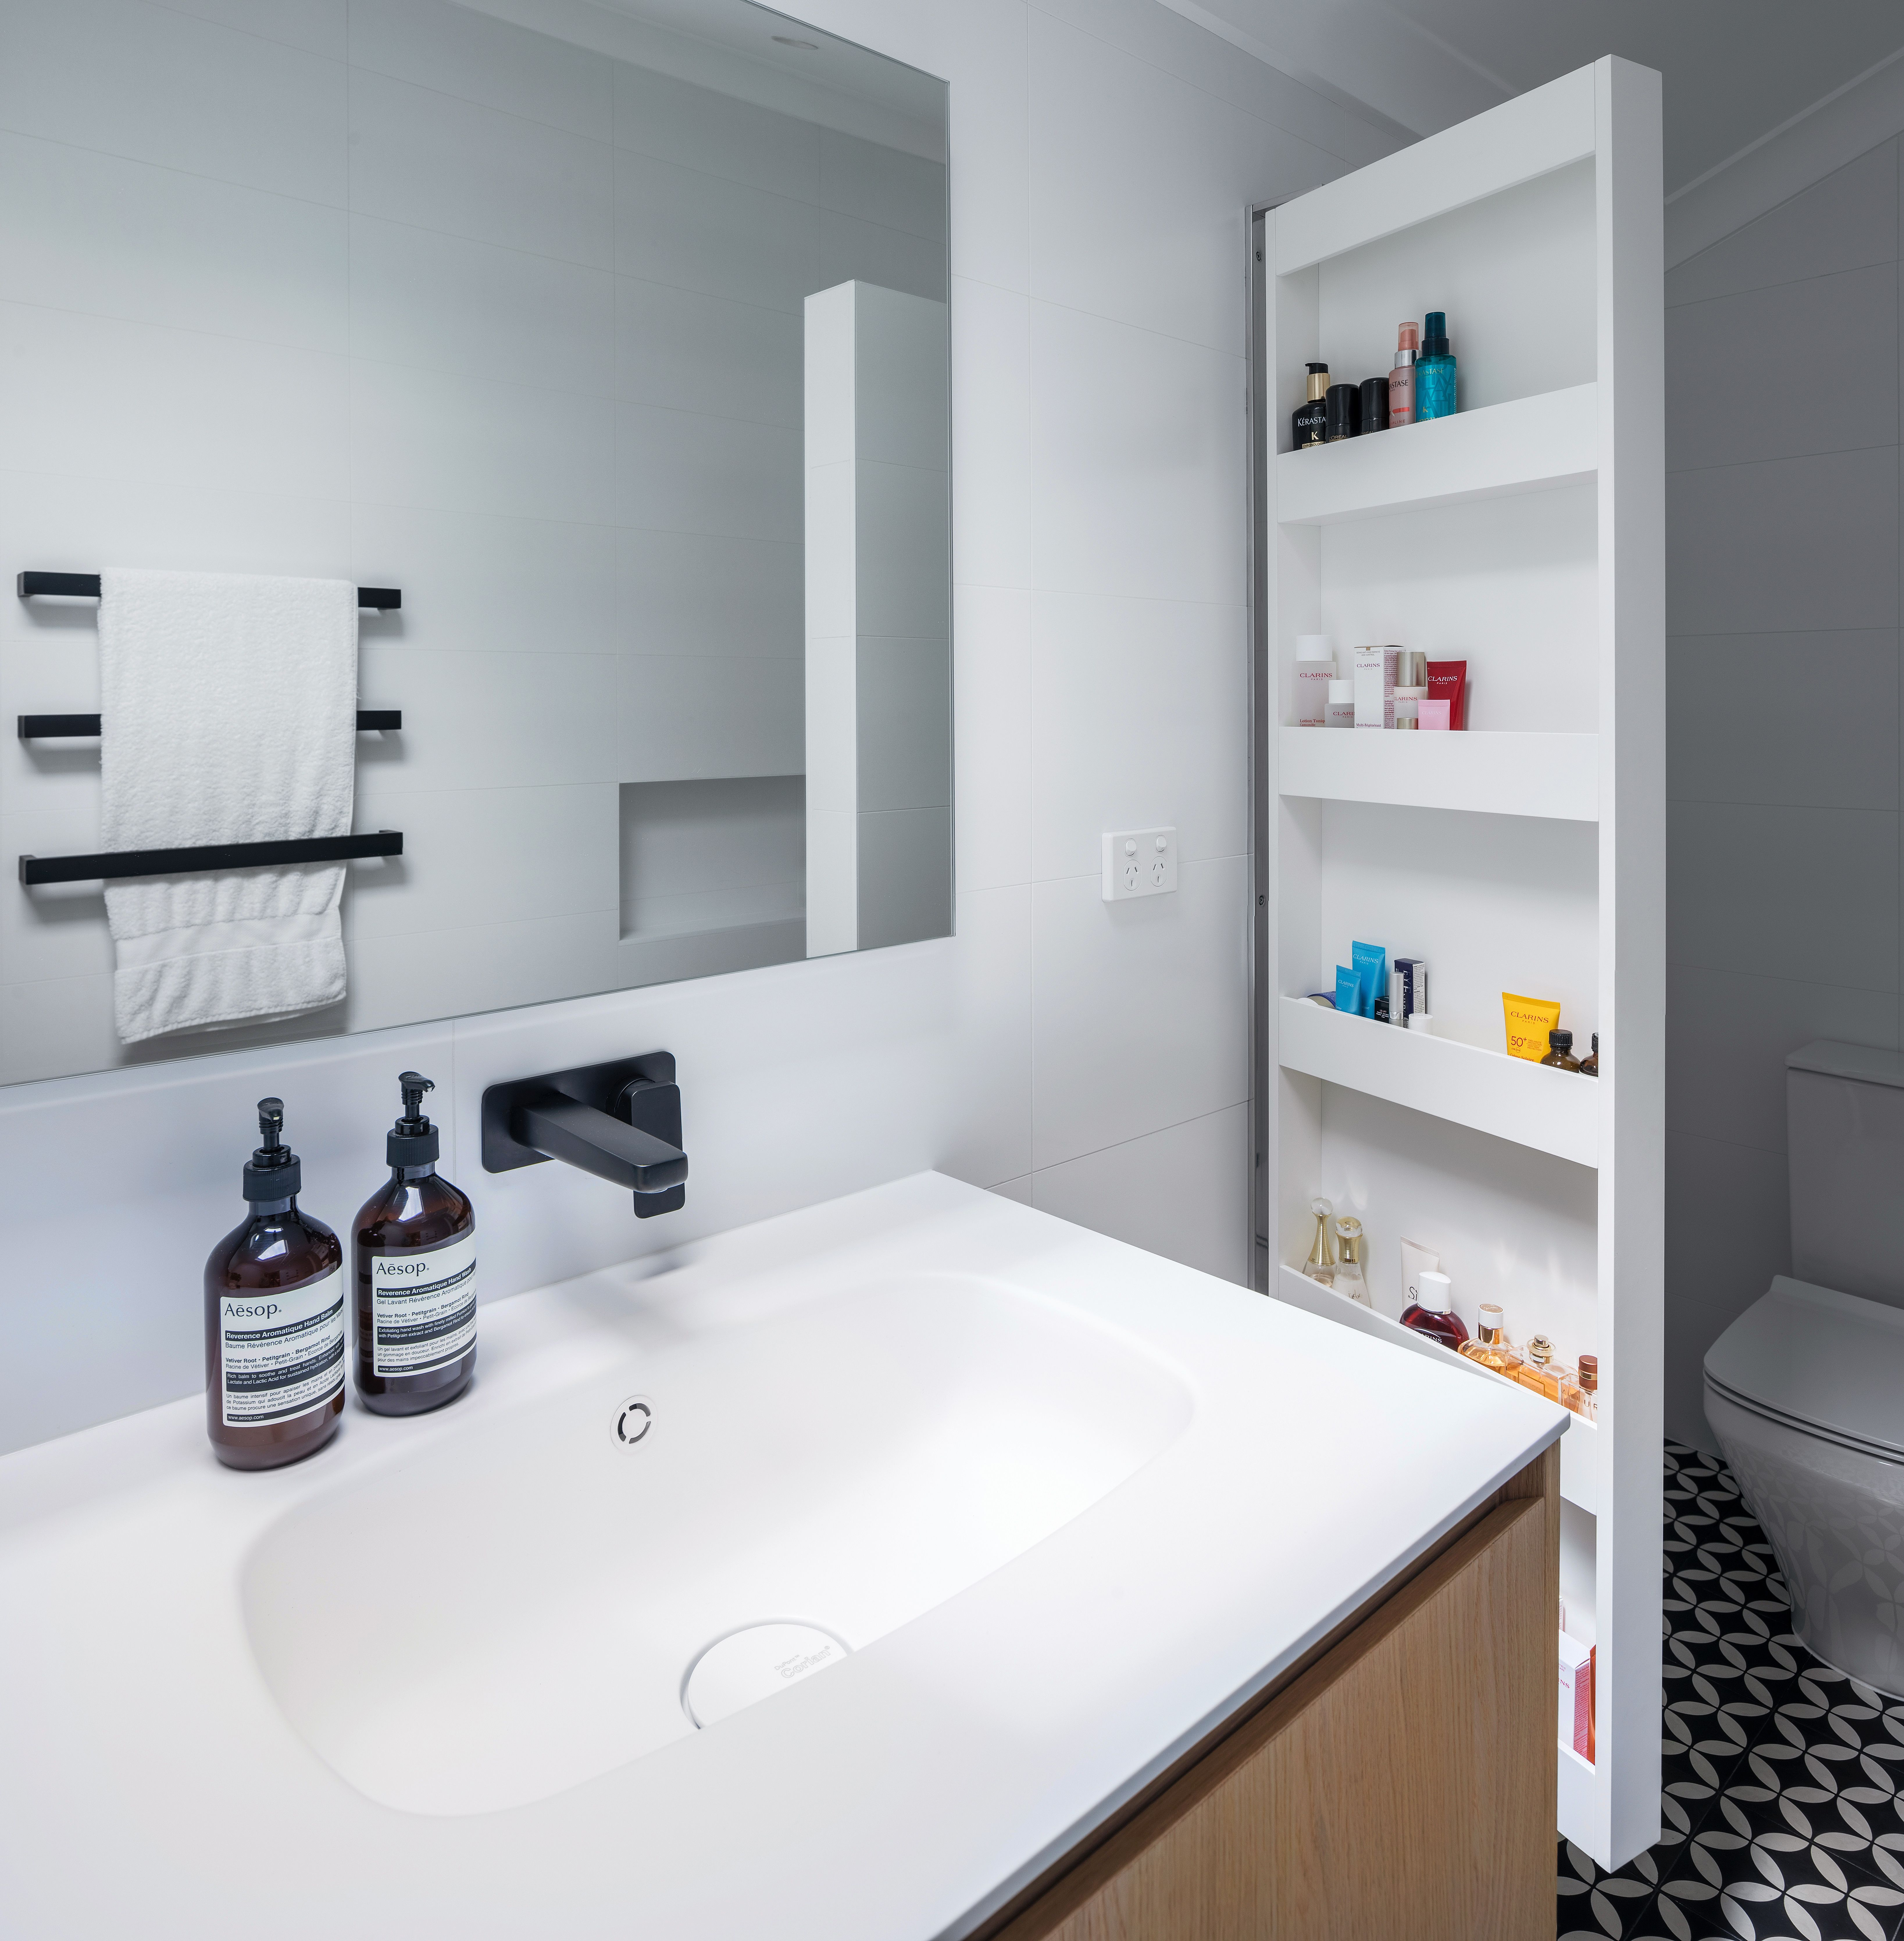 Previous Bathroom Project In Leederville - Ph: 08-6101-1190